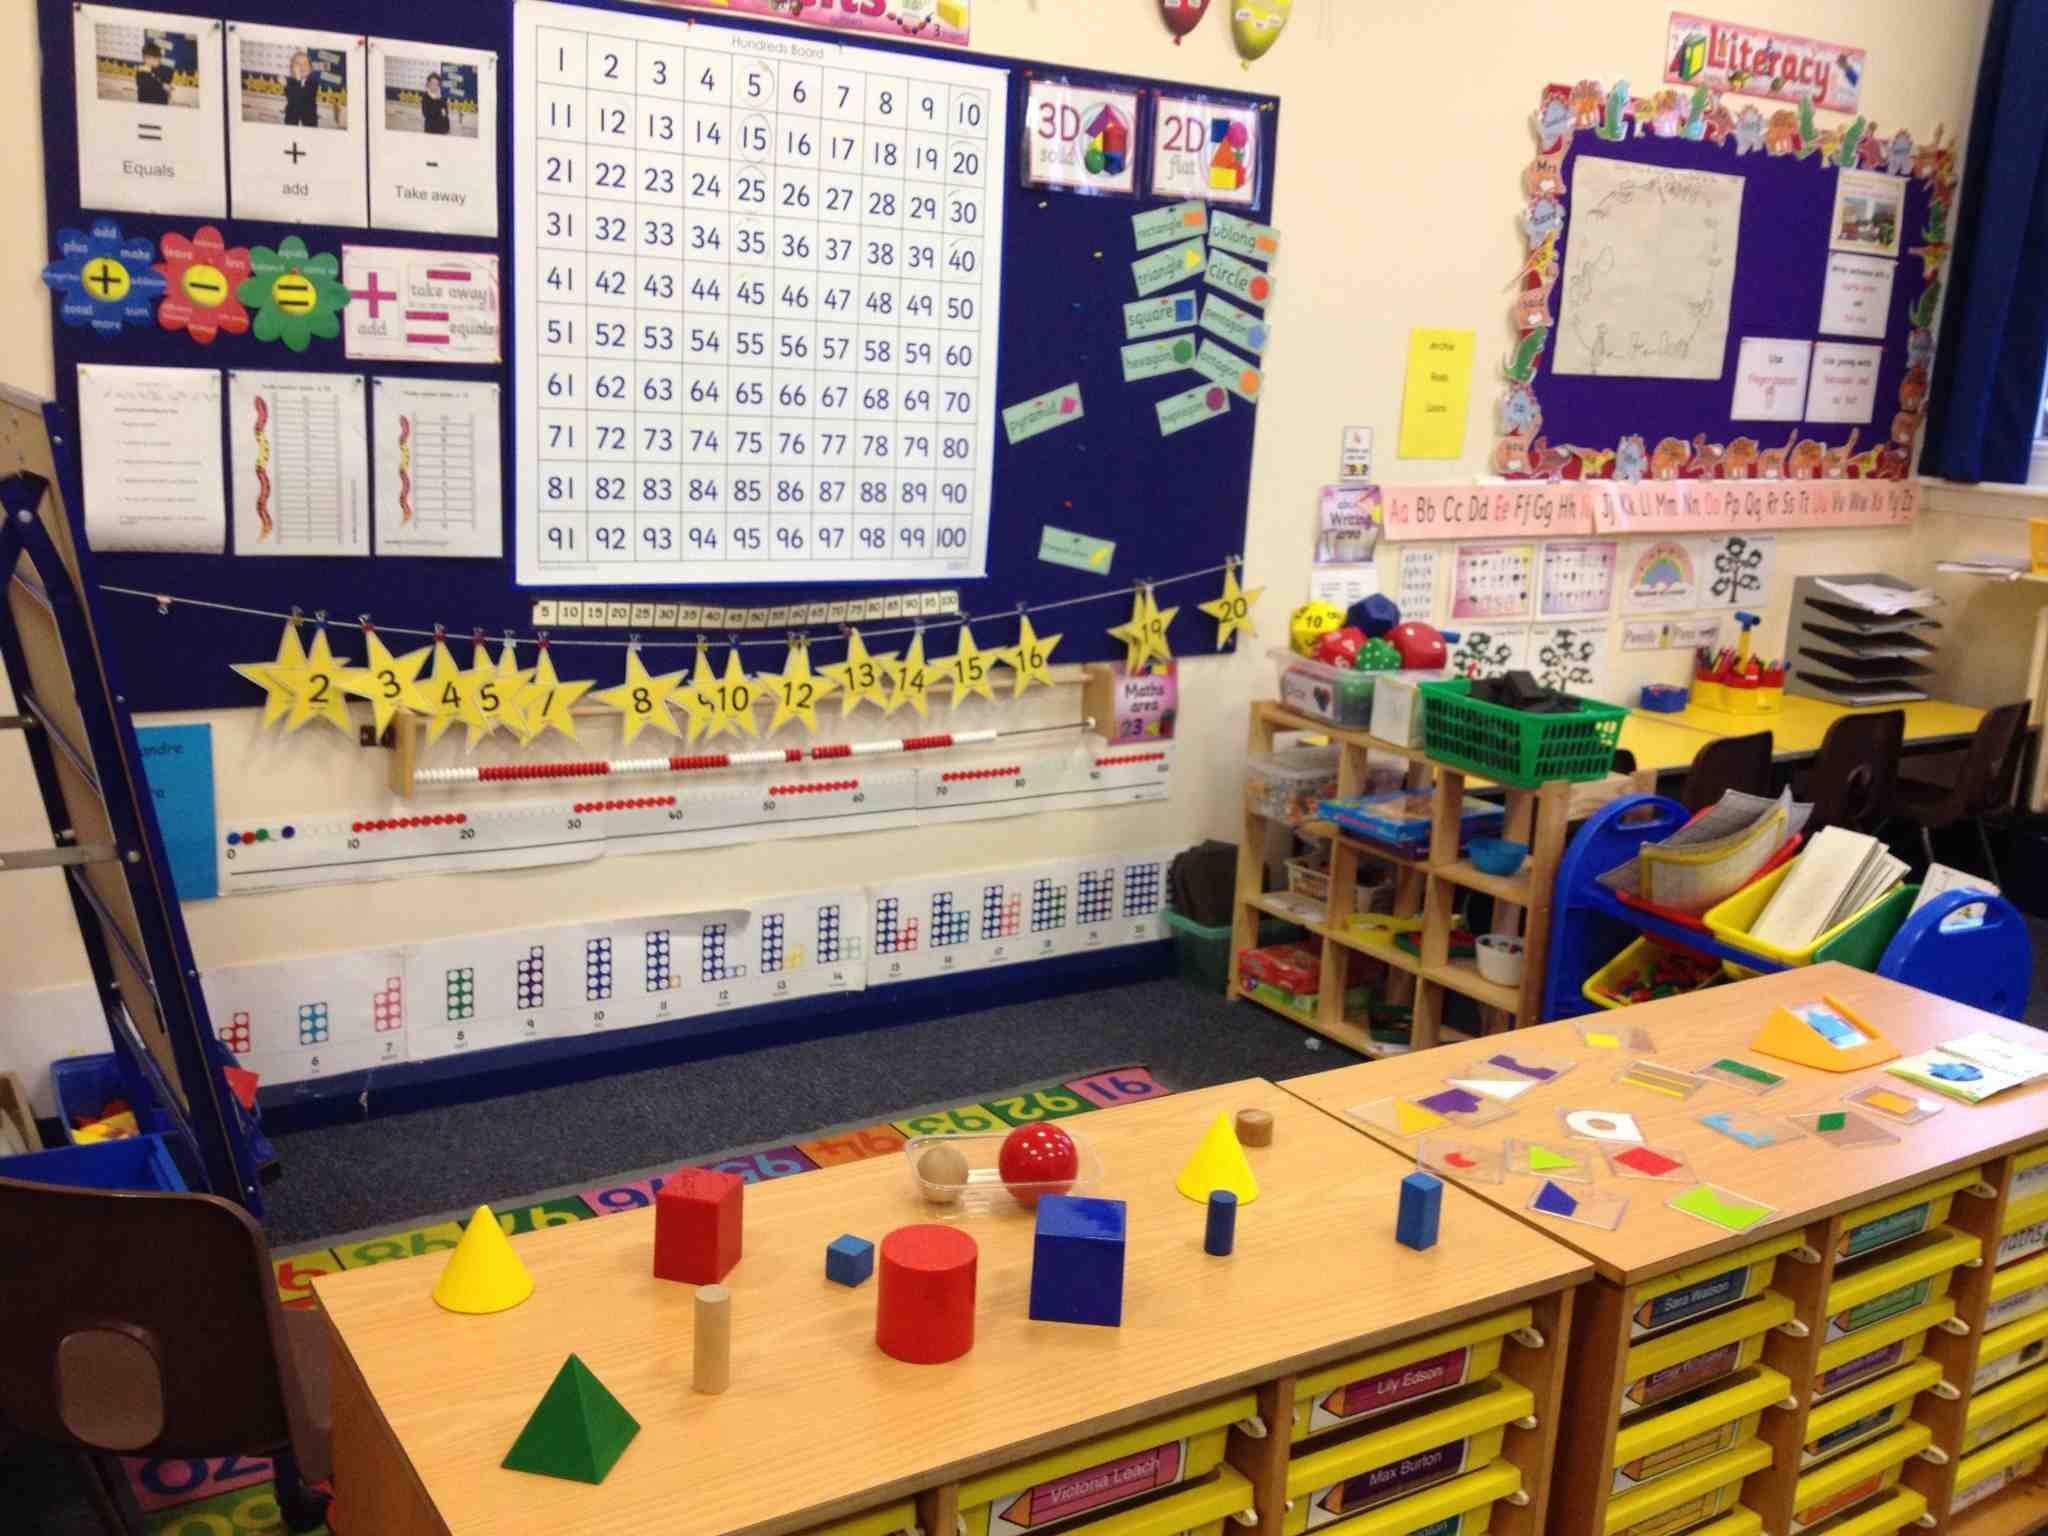 Pin By Aine Hassard On Eyfs Ideas